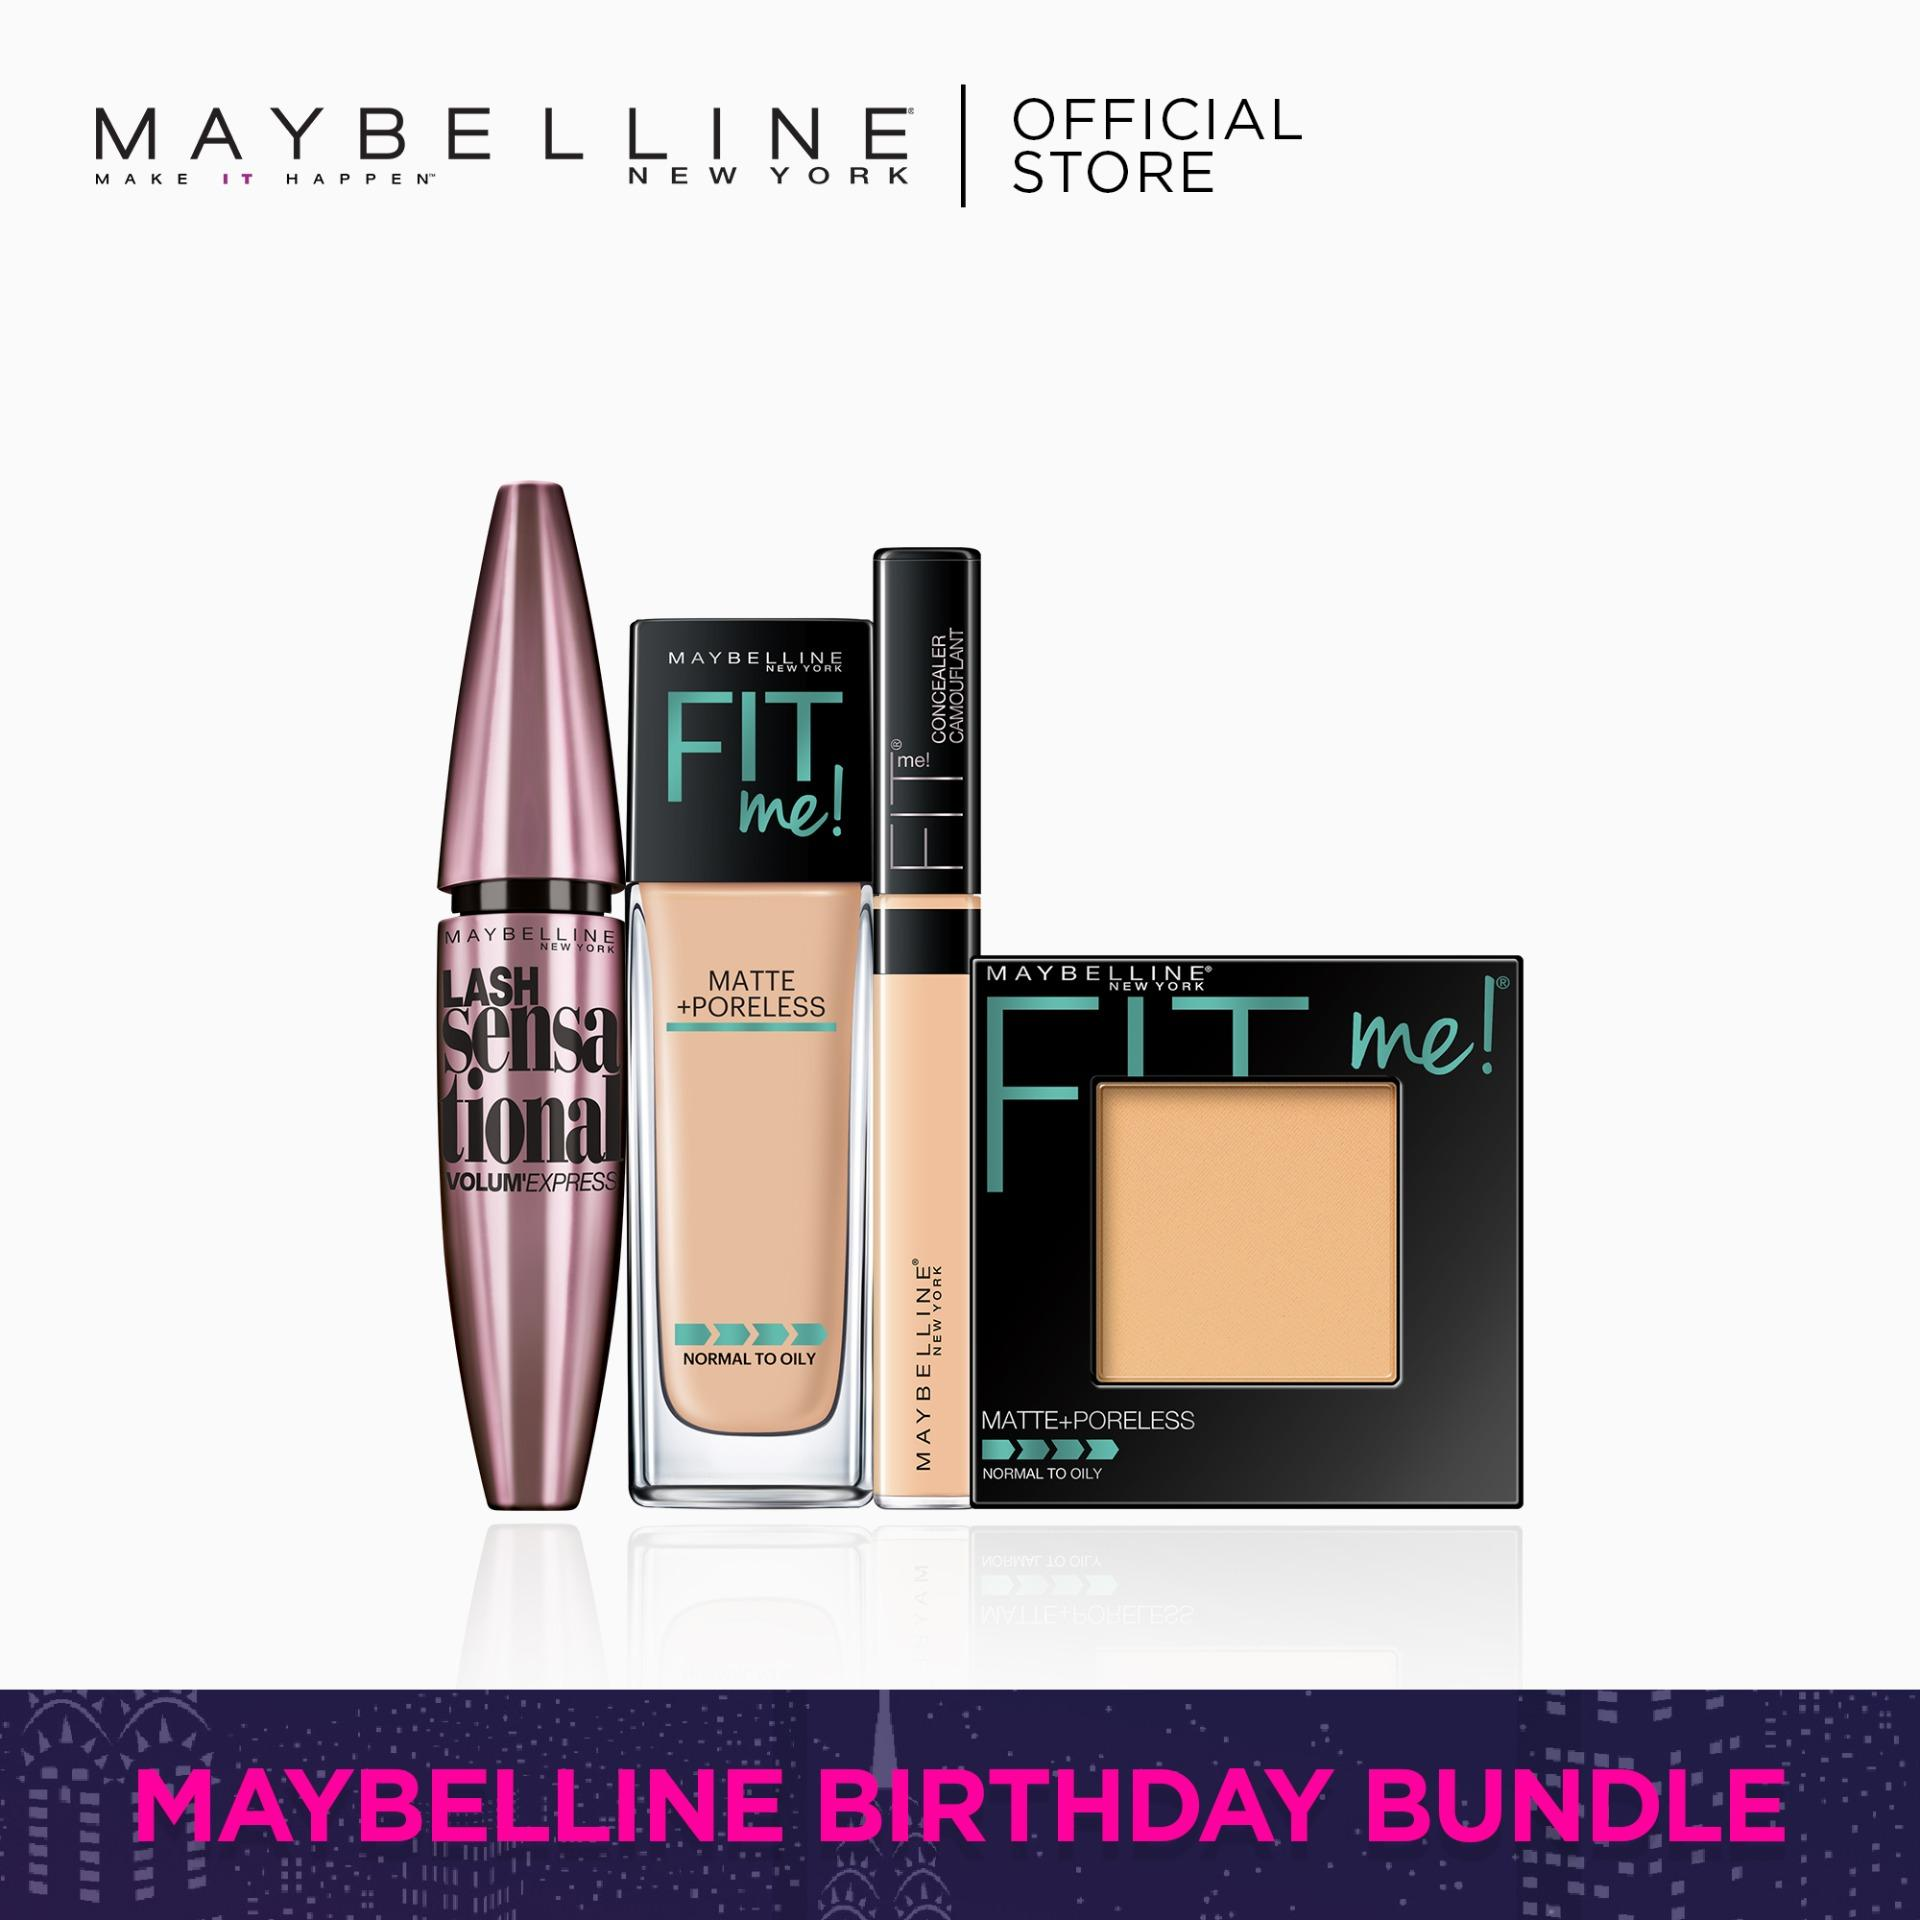 I Found My Fit: 128 Foundation + 130 Powder + 20 Concealer + Lash Sensational by Maybelline Fit Me Philippines